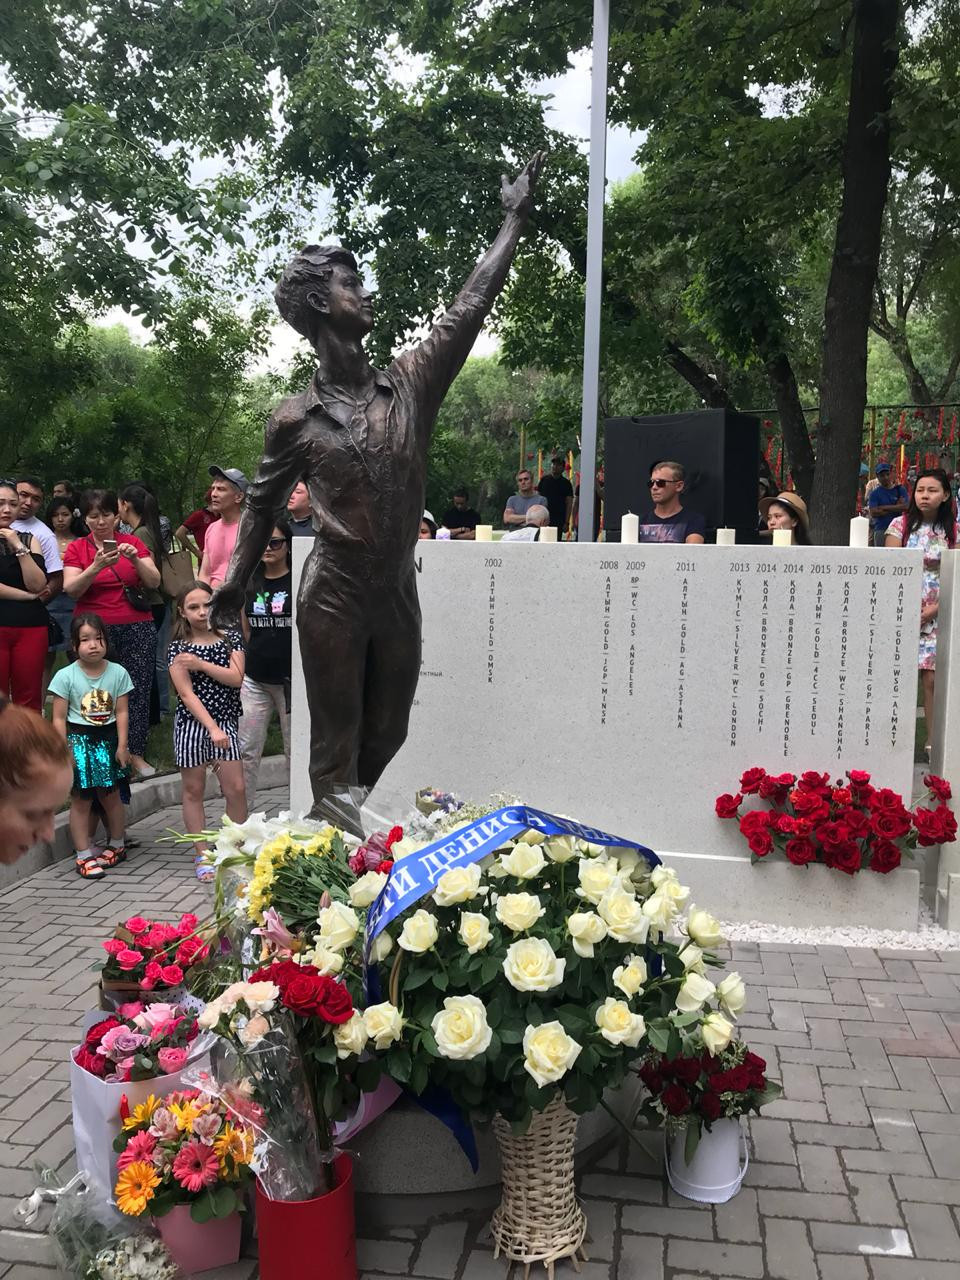 Memorial unveiled in Almaty to Kazakhstan's murdered Olympic figure skating medallist Ten